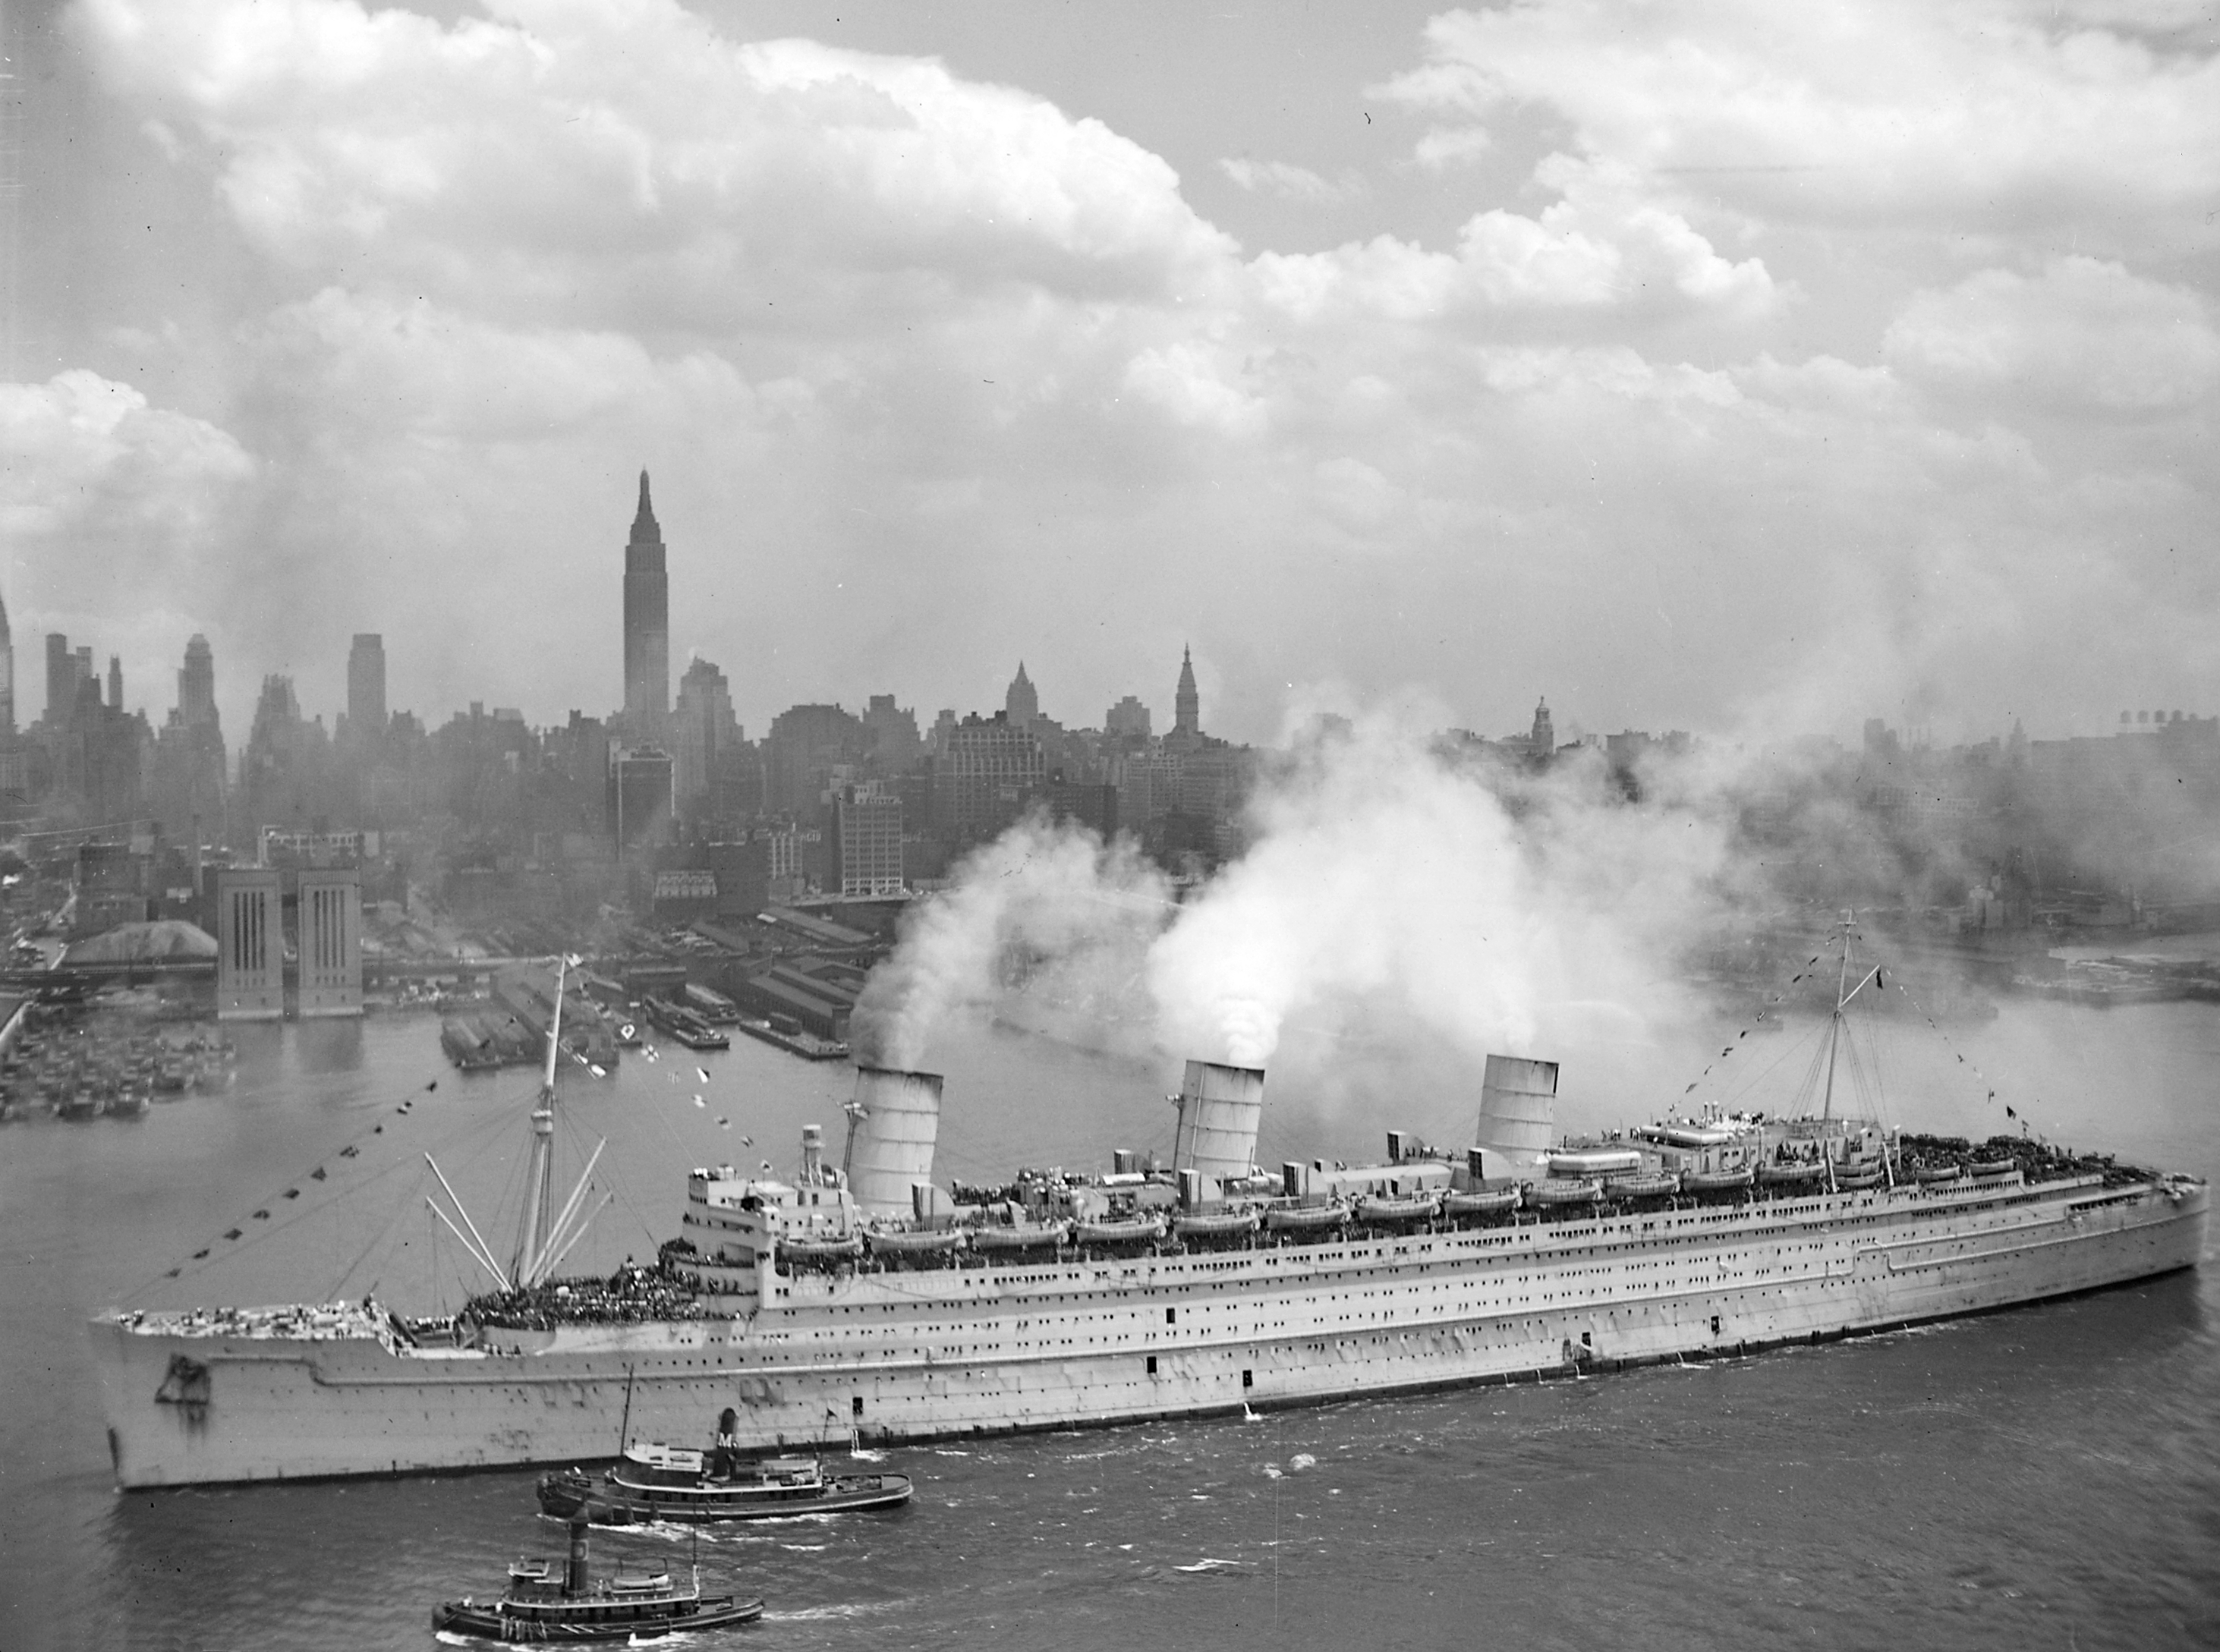 British troopship HMT Queen Mary returning US troops from Europe, New York, NY, 20 June 1945 (US National Archives)